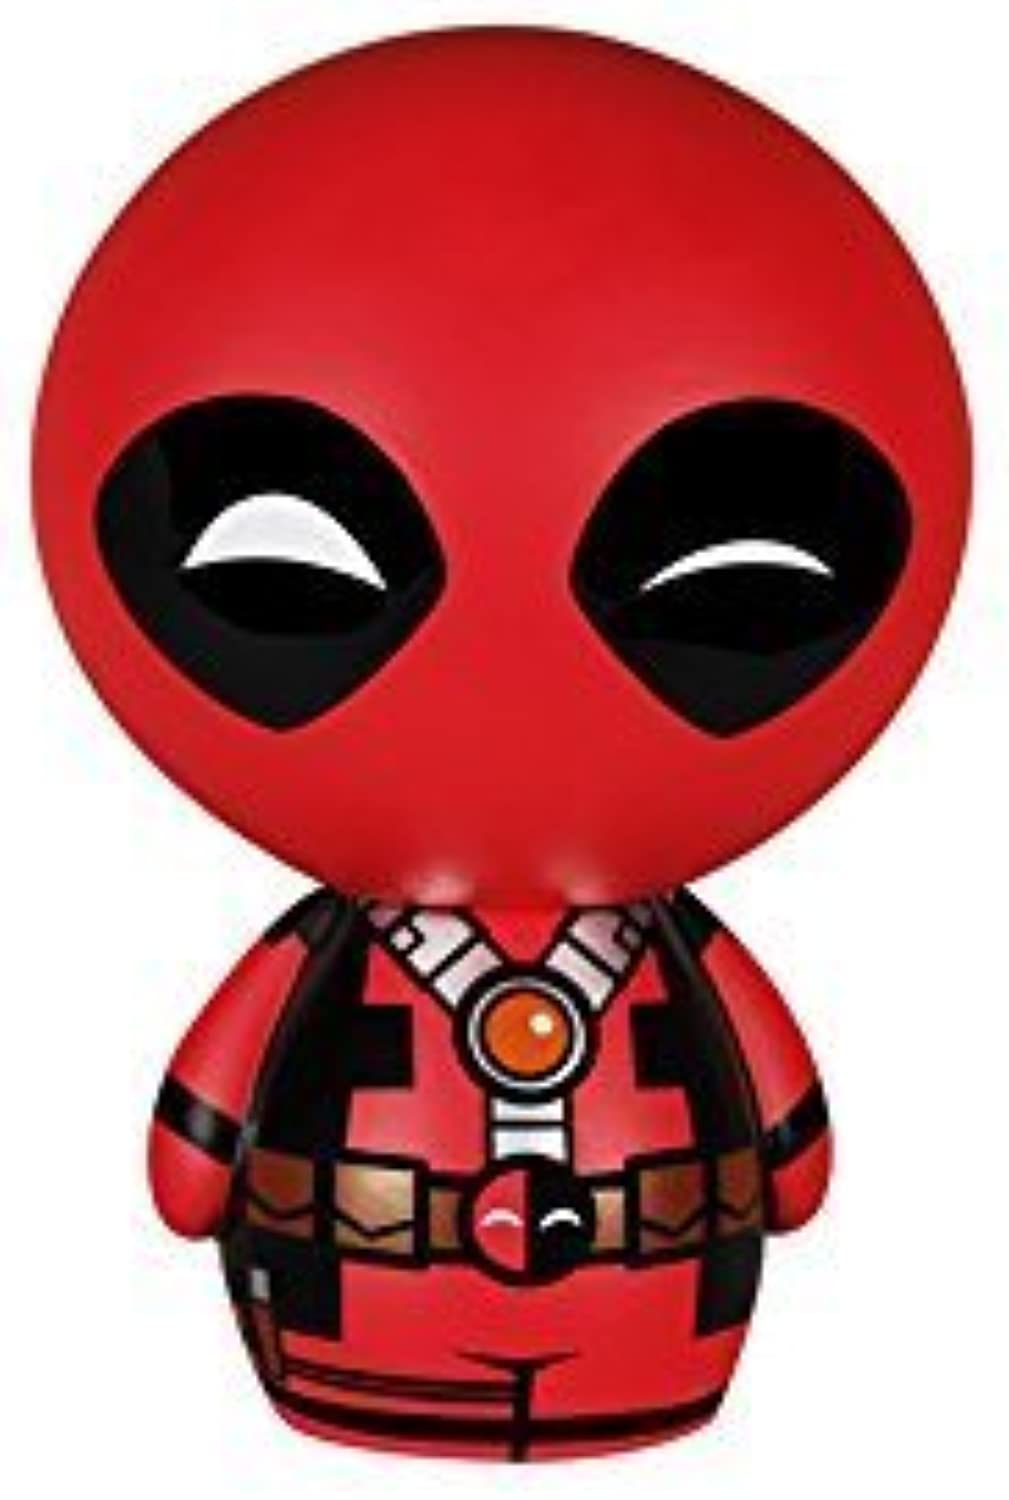 Funko  Figurine Marvel  Deadpool Dorbz 8cm  0849803059576 by Funko